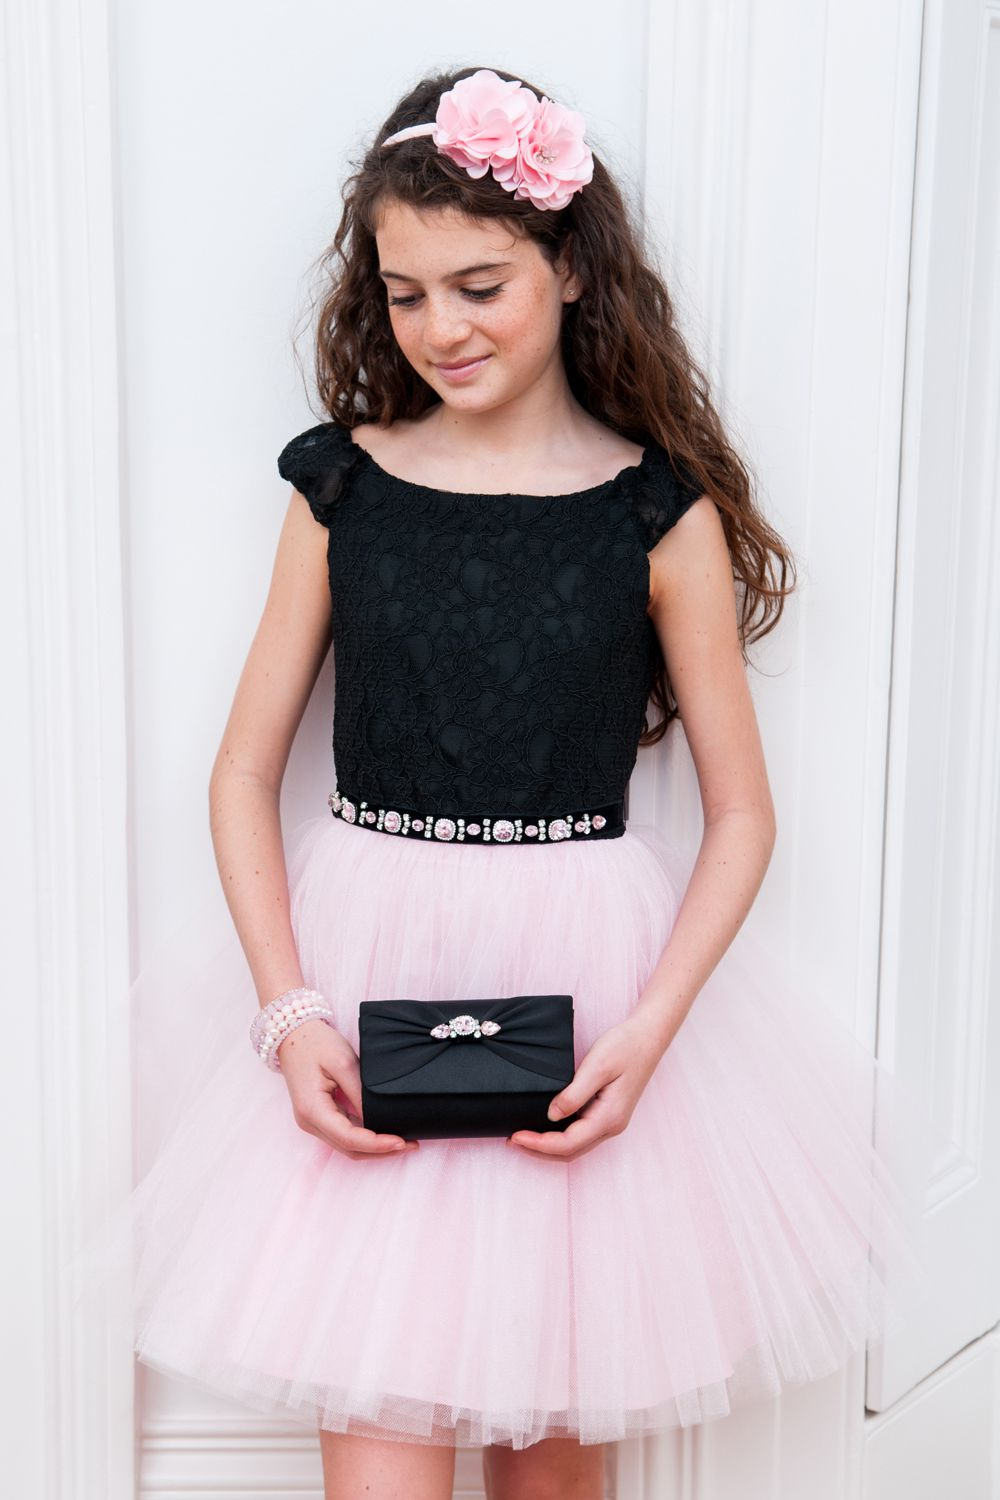 Your girl will be photoready in no time with this black and pink